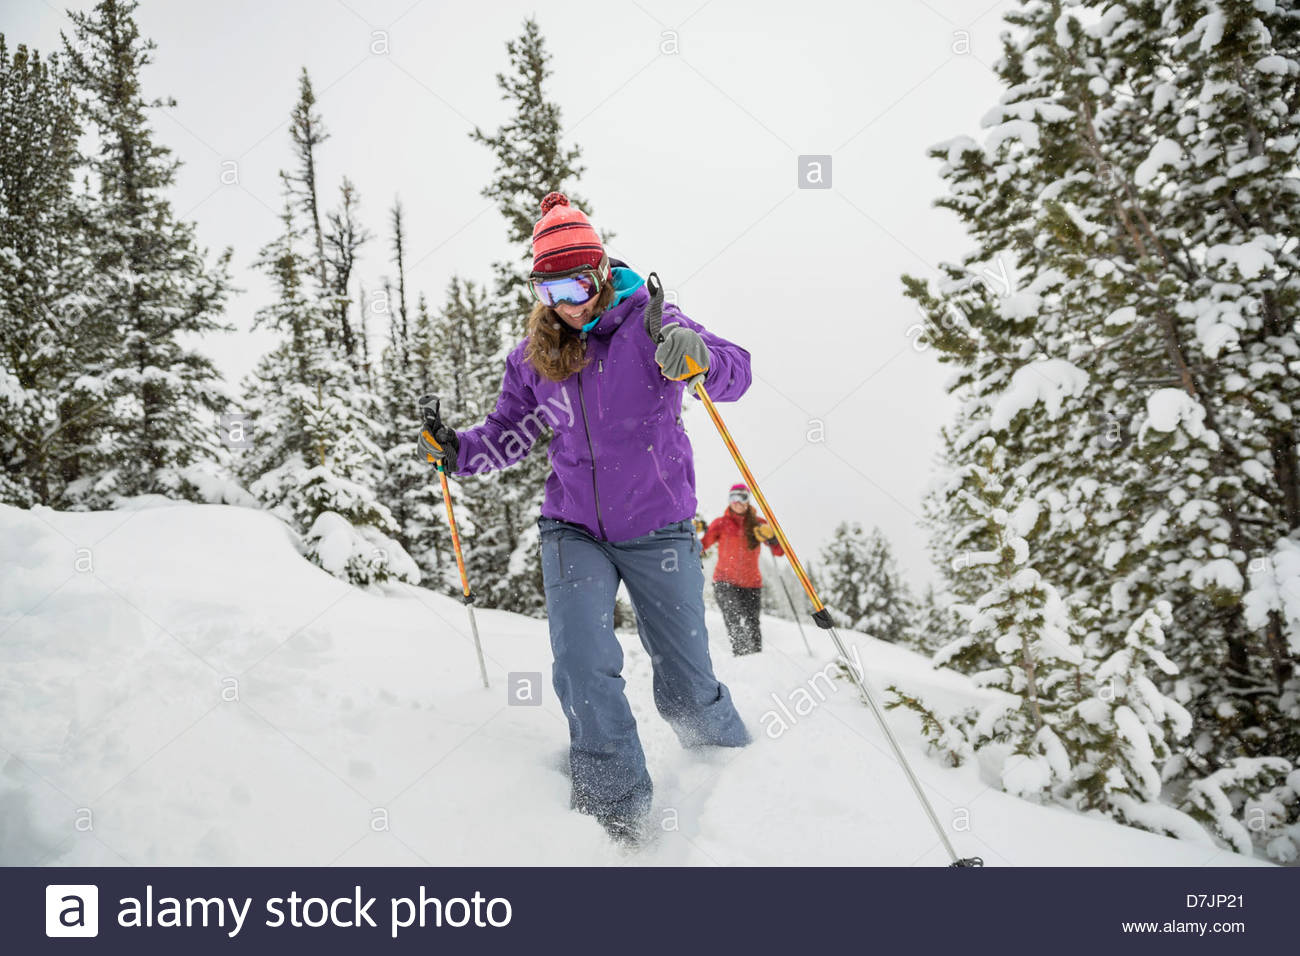 Women backcountry skiing in mountains - Stock Image